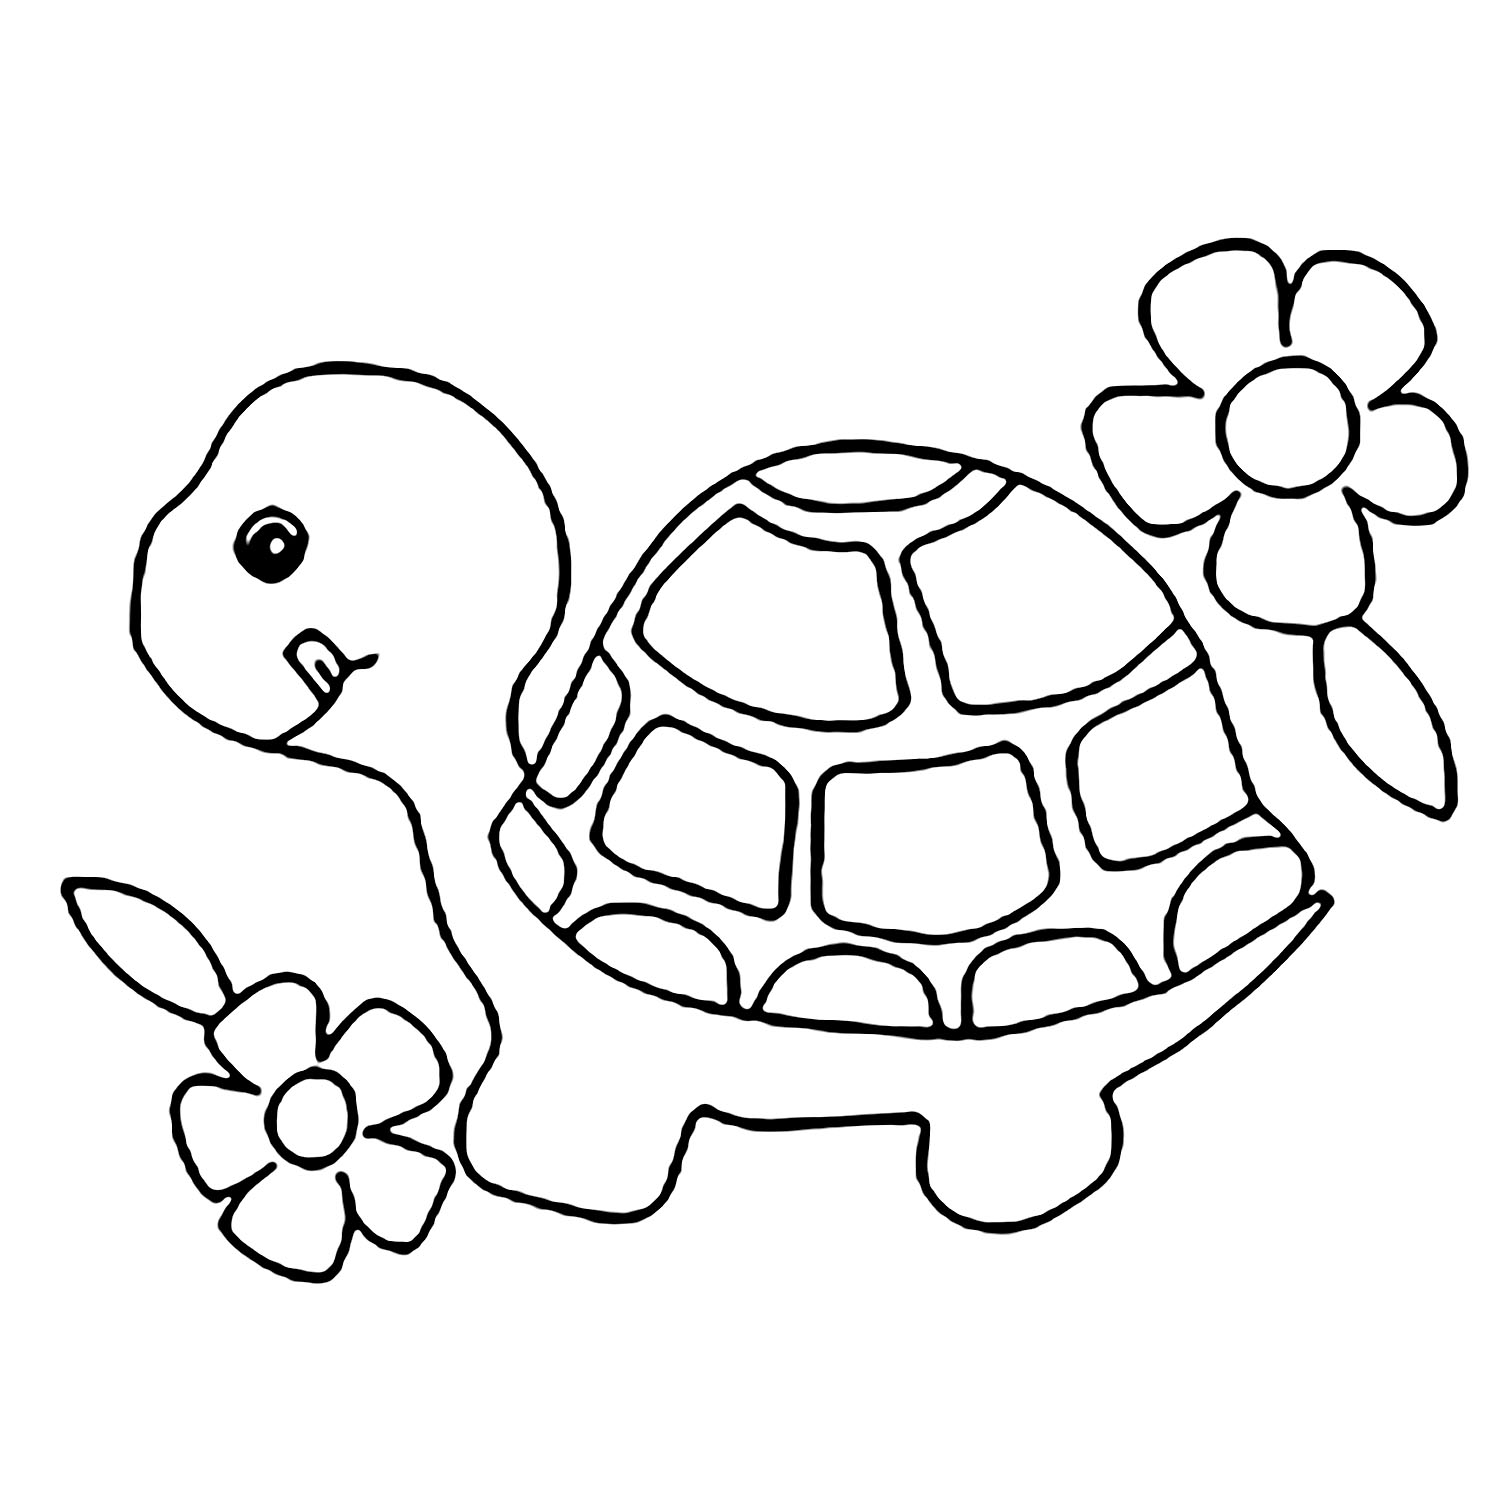 turtle pictures for coloring turtles free to color for kids turtles kids coloring pages turtle coloring pictures for